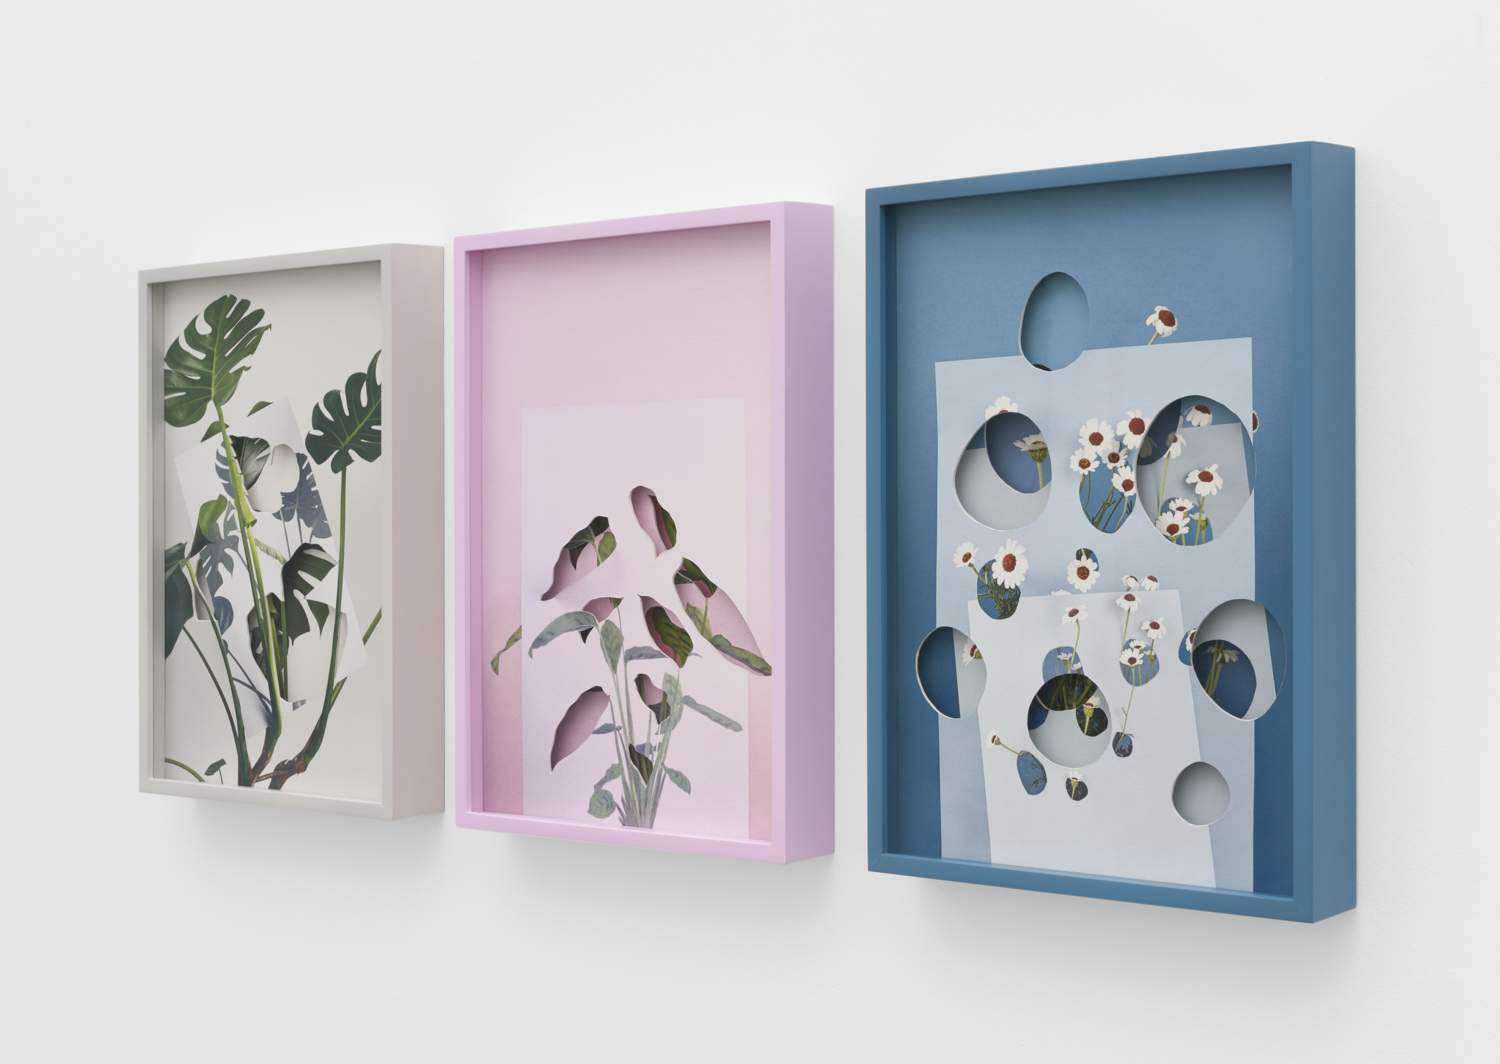 Alma Haser,  Pseudo Installation (Monstera Deliciosa, Calatheas, and Rhodanthemum ), 2018  (3) layered and cut digital pigment prints, 47 x 35 cm total (approx. 18.5 x 13.75 in) each with custom color frames, edition of 7   Inquire